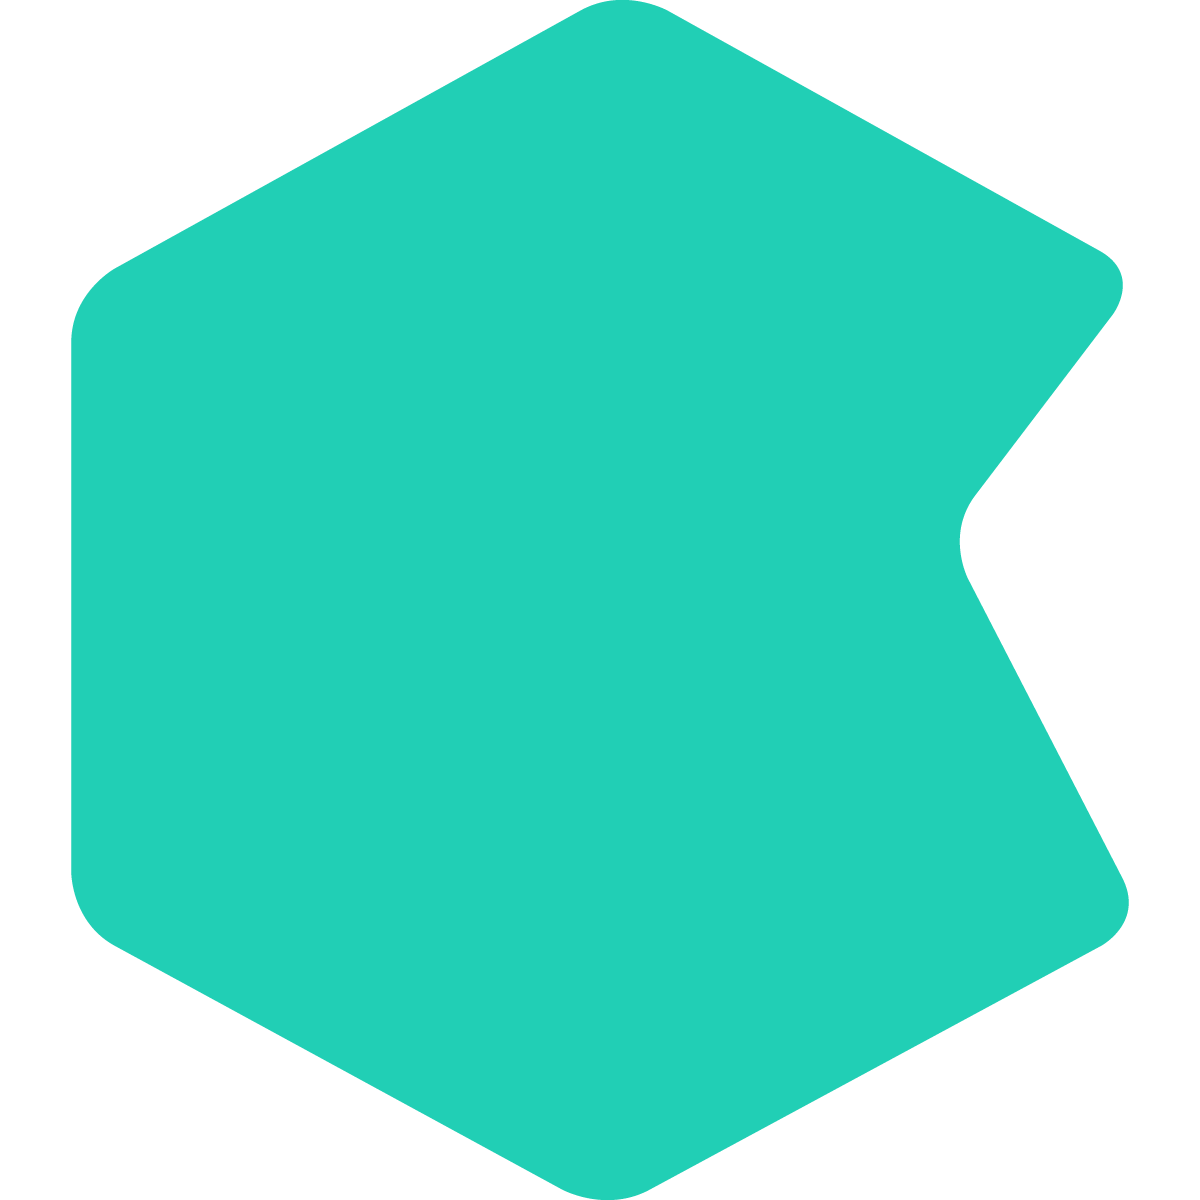 Hexagon overflow effect